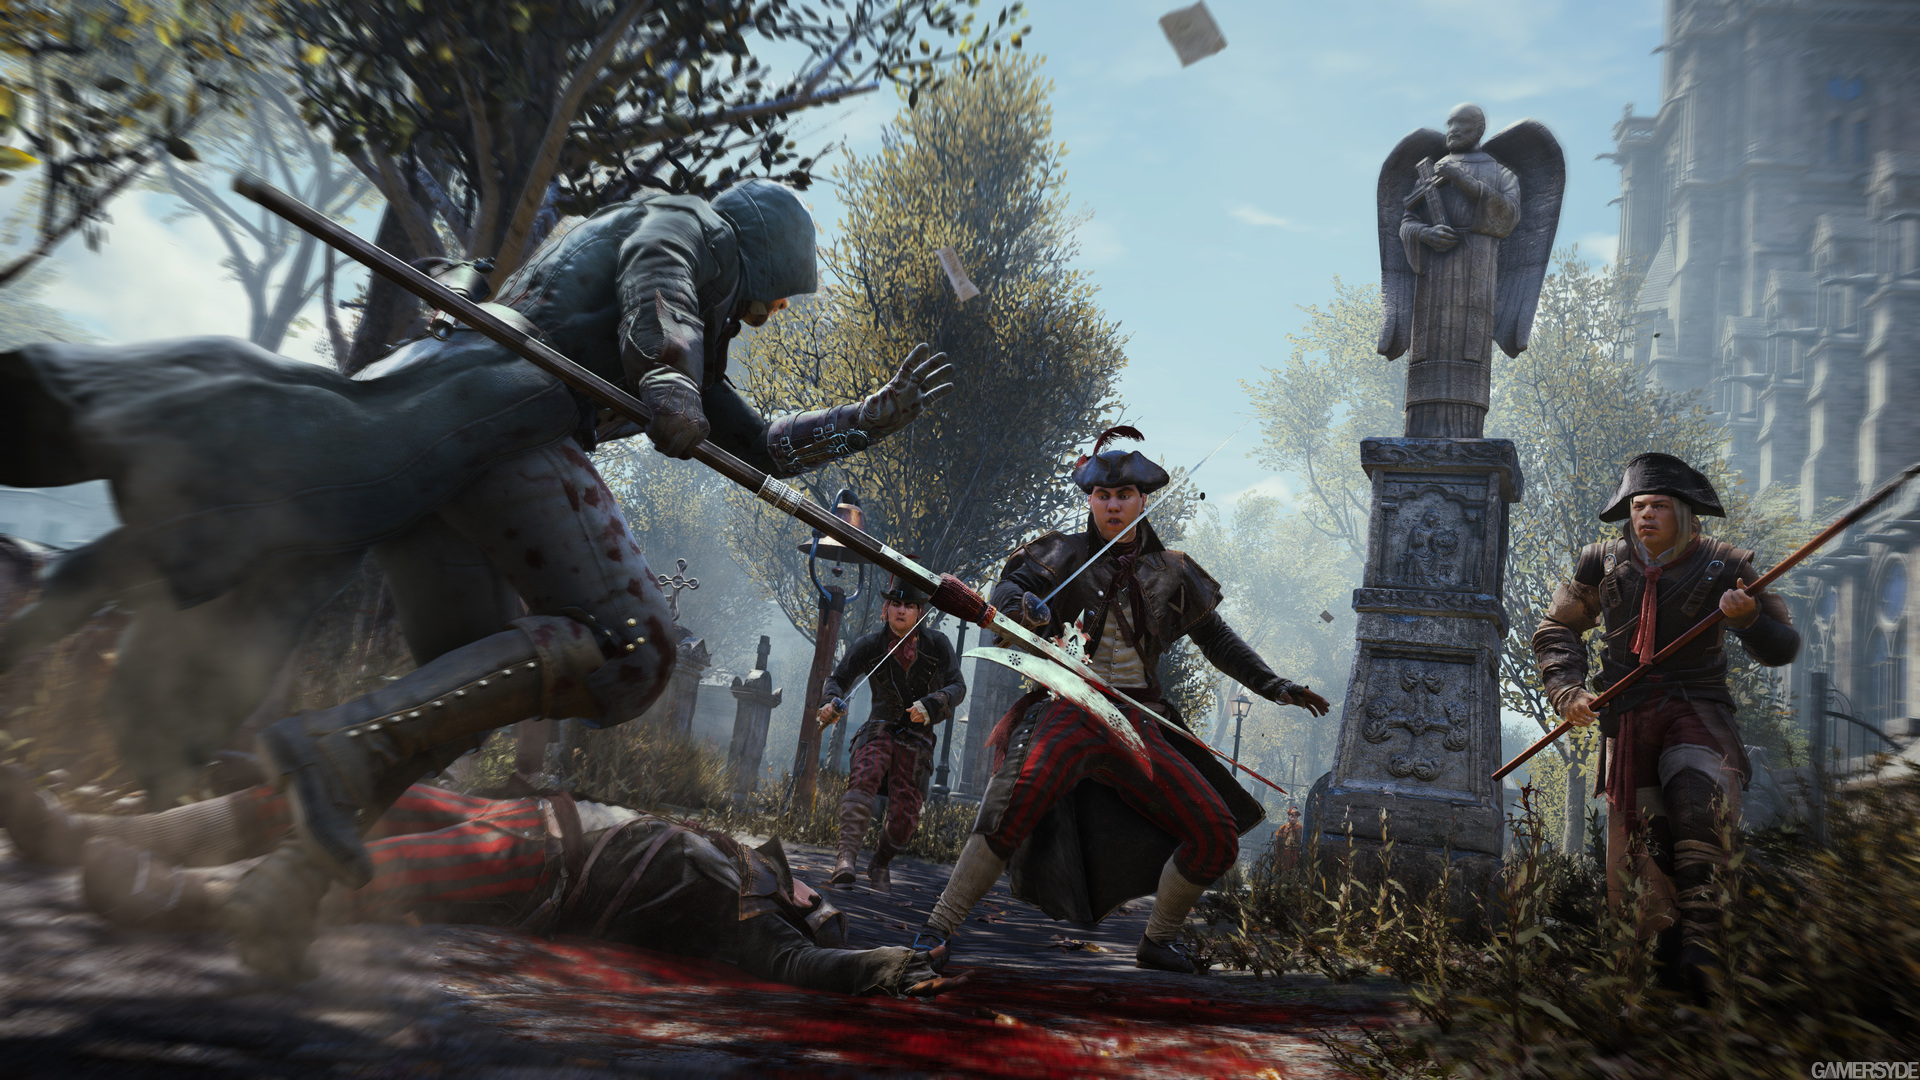 [Comic-Con] Novo gameplay de Assassin's Creed: Unity Image_assassin_s_creed_unity-25823-2908_0002